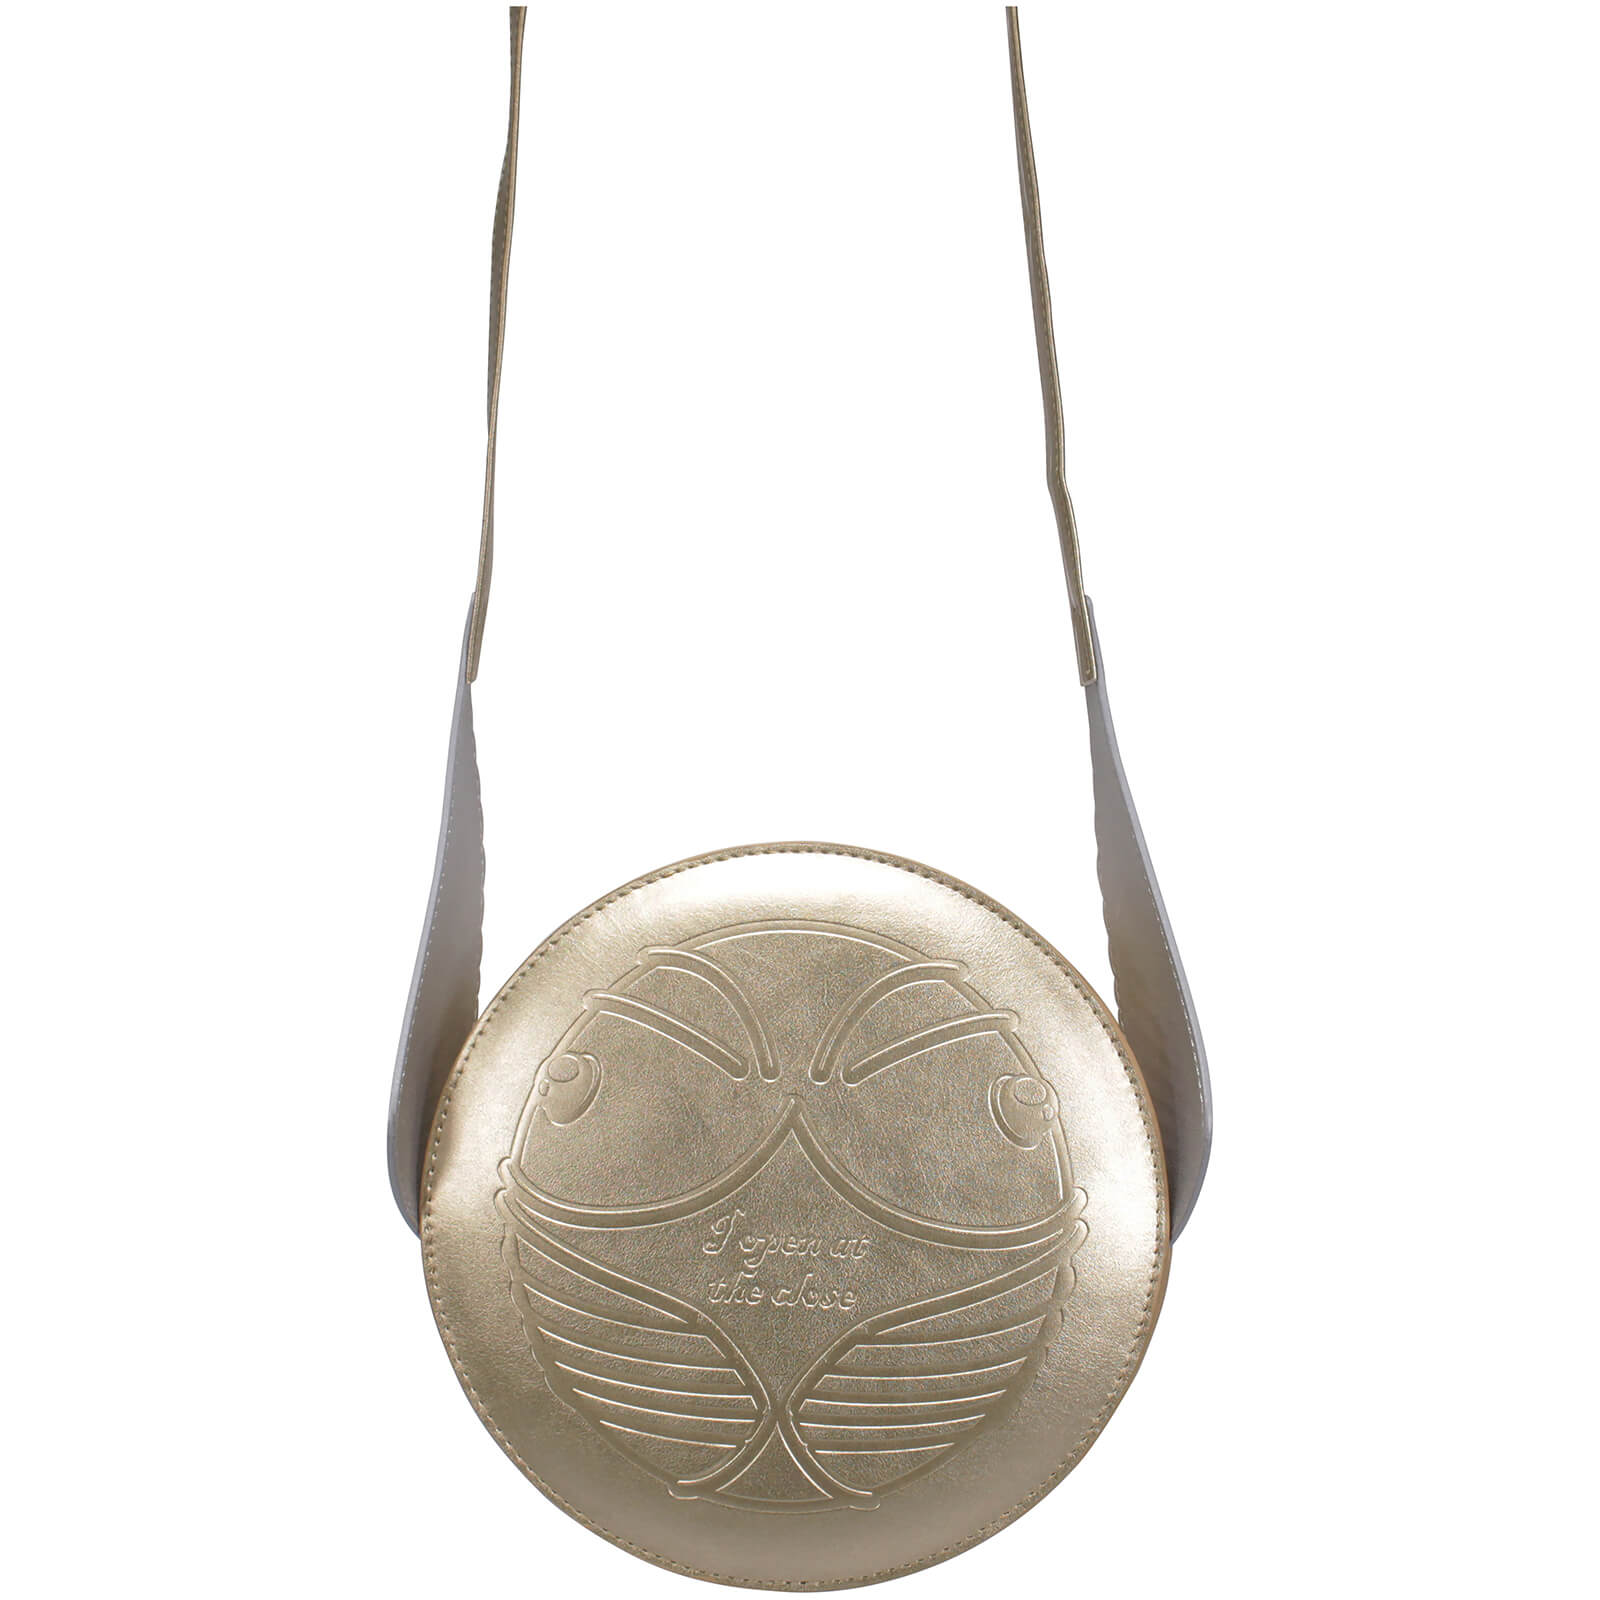 Image of Harry Potter Golden Snitch Cross Body Bag